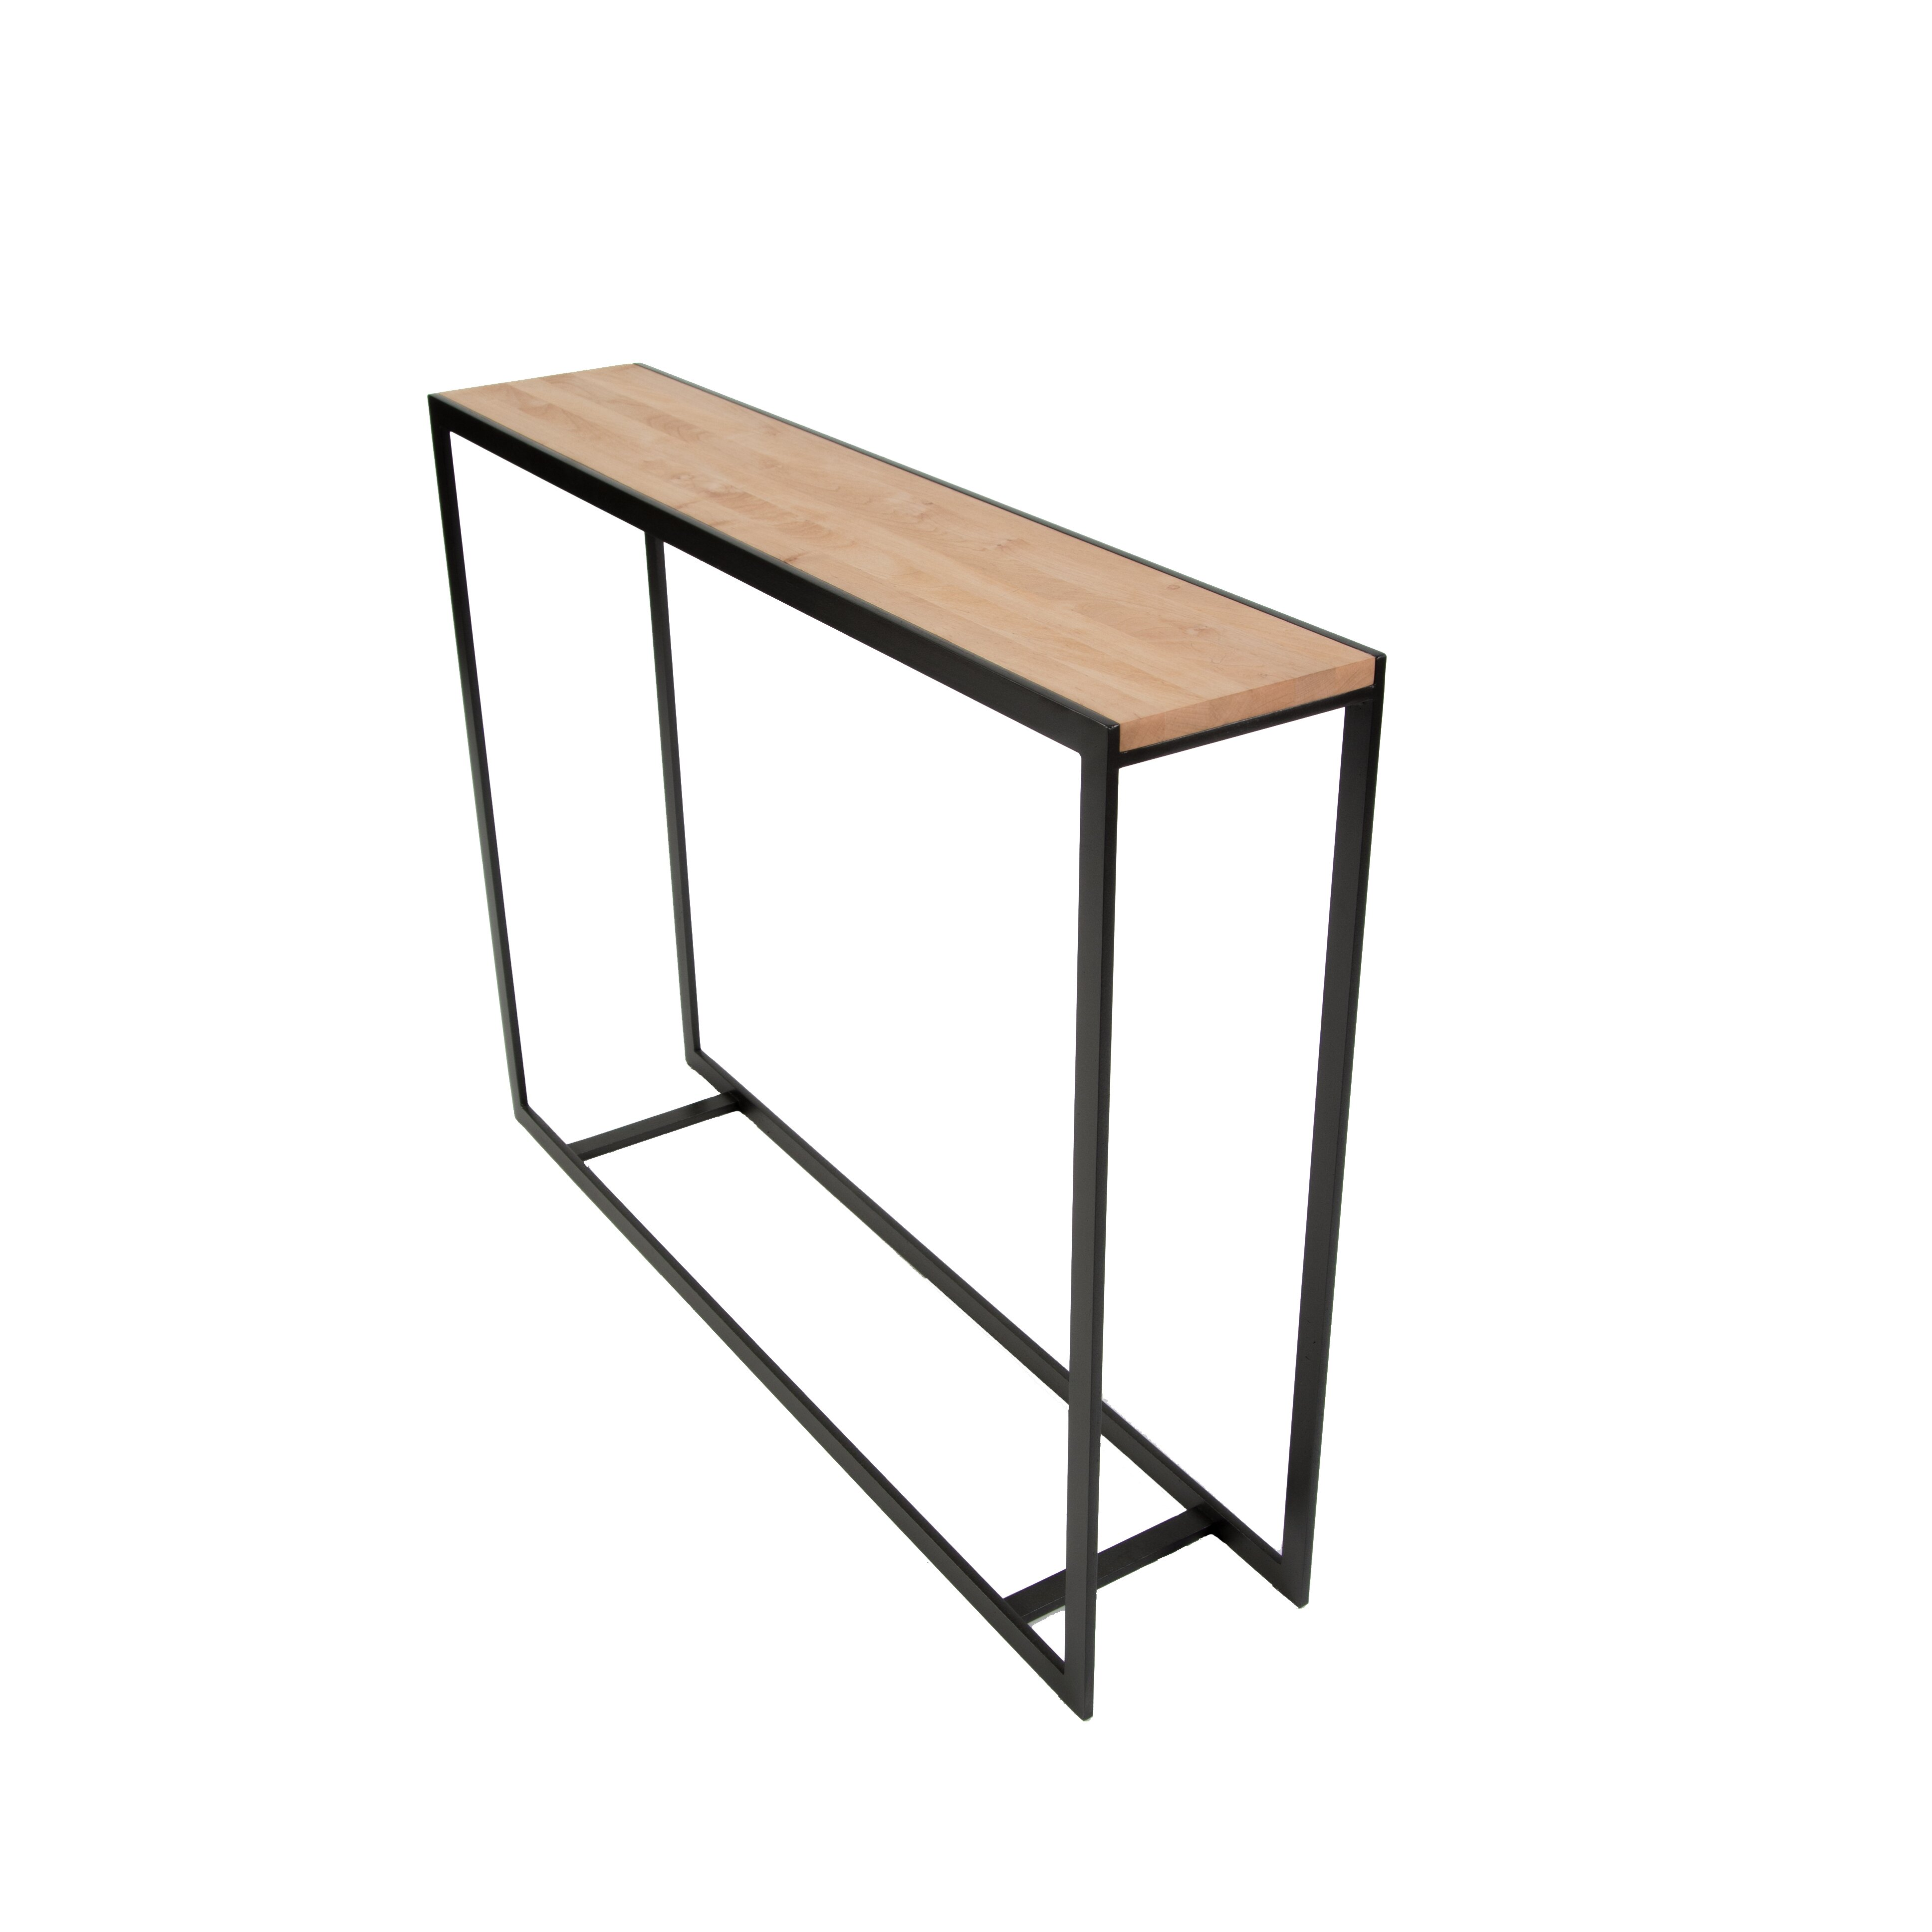 Sterk Furniture pany Ansted Console Table & Reviews